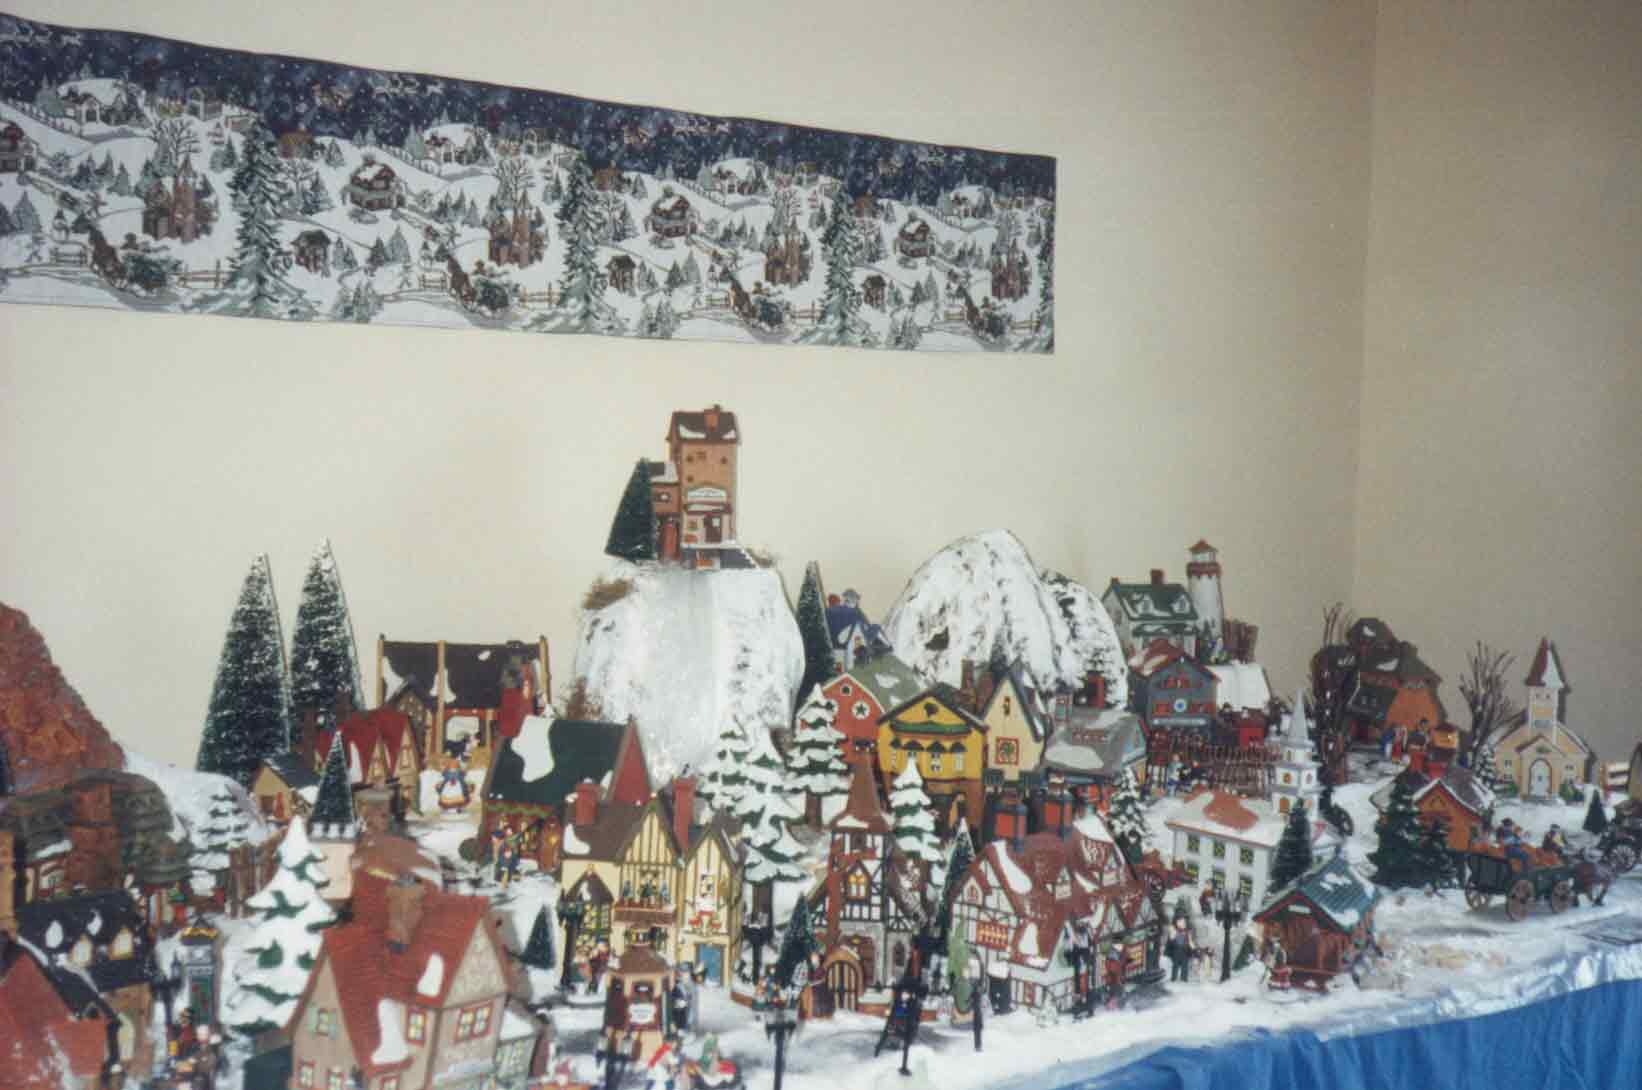 A distant view of the Dept 56 display